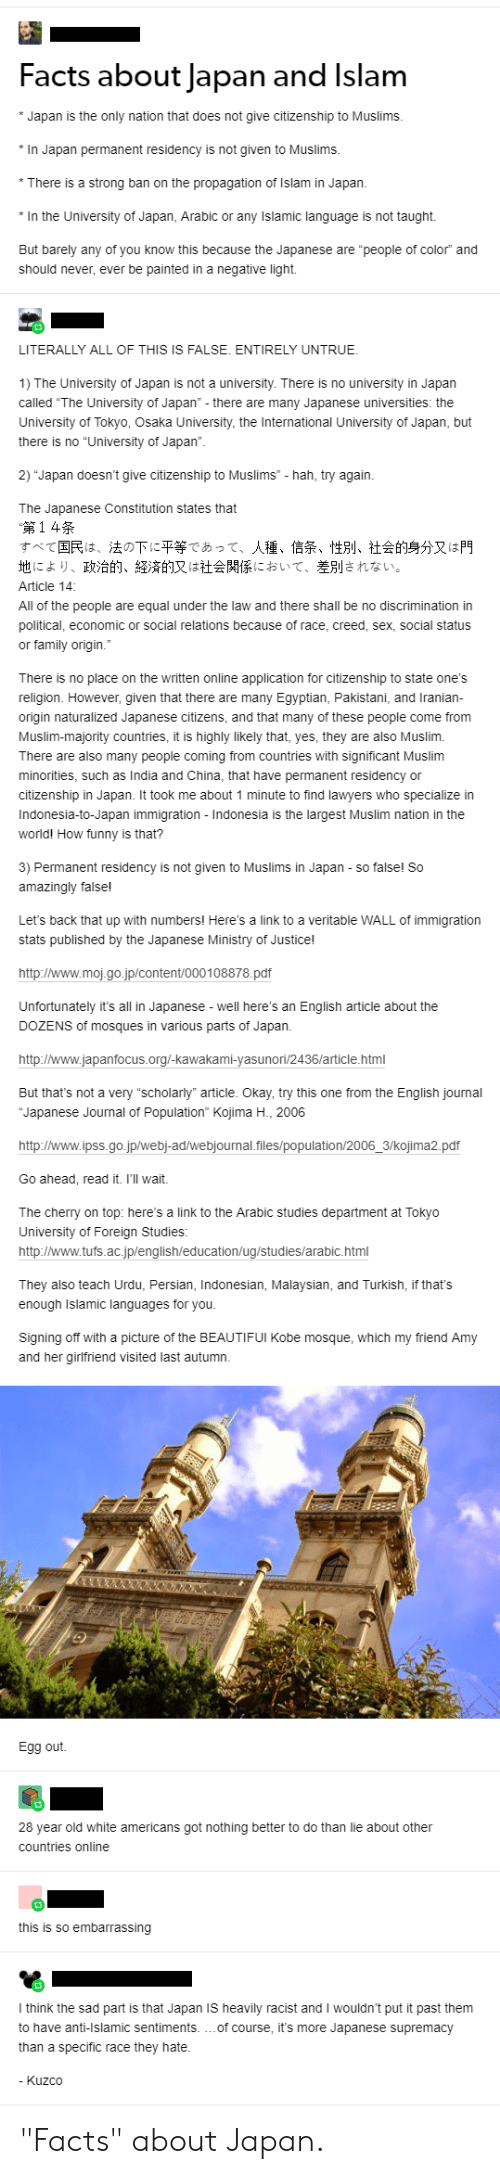 """Facts, Family, and Funny: Facts about Japan and Islam  Japan is the only nation that does not give citizenship to Muslims.  In Japan permanent residency is not given to Muslims.  *There is a strong ban on the propagation of Islam in Japan.  In the University of Japan, Arabic or any Islamic language is not taught  But barely any of you know this because the Japanese are """"people of color"""" and  should never, ever be painted in a negative light.  LITERALLY ALL OF THIS IS FALSE. ENTIRELY UNTRUE.  1) The University of Japan is not a university. There is no university in Japan  called """"The University of Japan"""" - there are many Japanese universities: the  University of Tokyo, Osaka University, the International University of Japan, but  there is no """"University of Japan"""".  2) Japan doesn't give citizenship to Muslims -hah, try again.  The Japanese Constitution states that  14  すべて国民は、法の下に平等であって、人種、信条、性別、社会的身分又は門  地により、政治的、経済的又は社会関係において、差別されない。  Article 14  All of the people are equal under the law and there shall be no discrimination in  political, economic or social relations because of race, creed, sex, social status  or family origin.""""  There is no place on the written online application for citizenship to state one's  religion. However, given that there are many Egyptian, Pakistani, and Iranian  origin naturalized Japanese citizens, and that many of these people come from  Muslim-majority countries, it is highly likely that, yes, they are also Muslim  There are also many people coming from countries with significant Muslim  minorities, such as India and China, that have permanent residency or  citizenship in Japan. It took me about 1 minute to find lawyers who specialize in  Indonesia-to-Japan immigration - Indonesia is the largest Muslim nation in the  world! How funny is that?  3) Permanent residency is not given to Muslims in Japan so false! So  amazingly false!  Let's back that up with numbers! Here's a link to a veritable WALL of immigration  stats published by the """